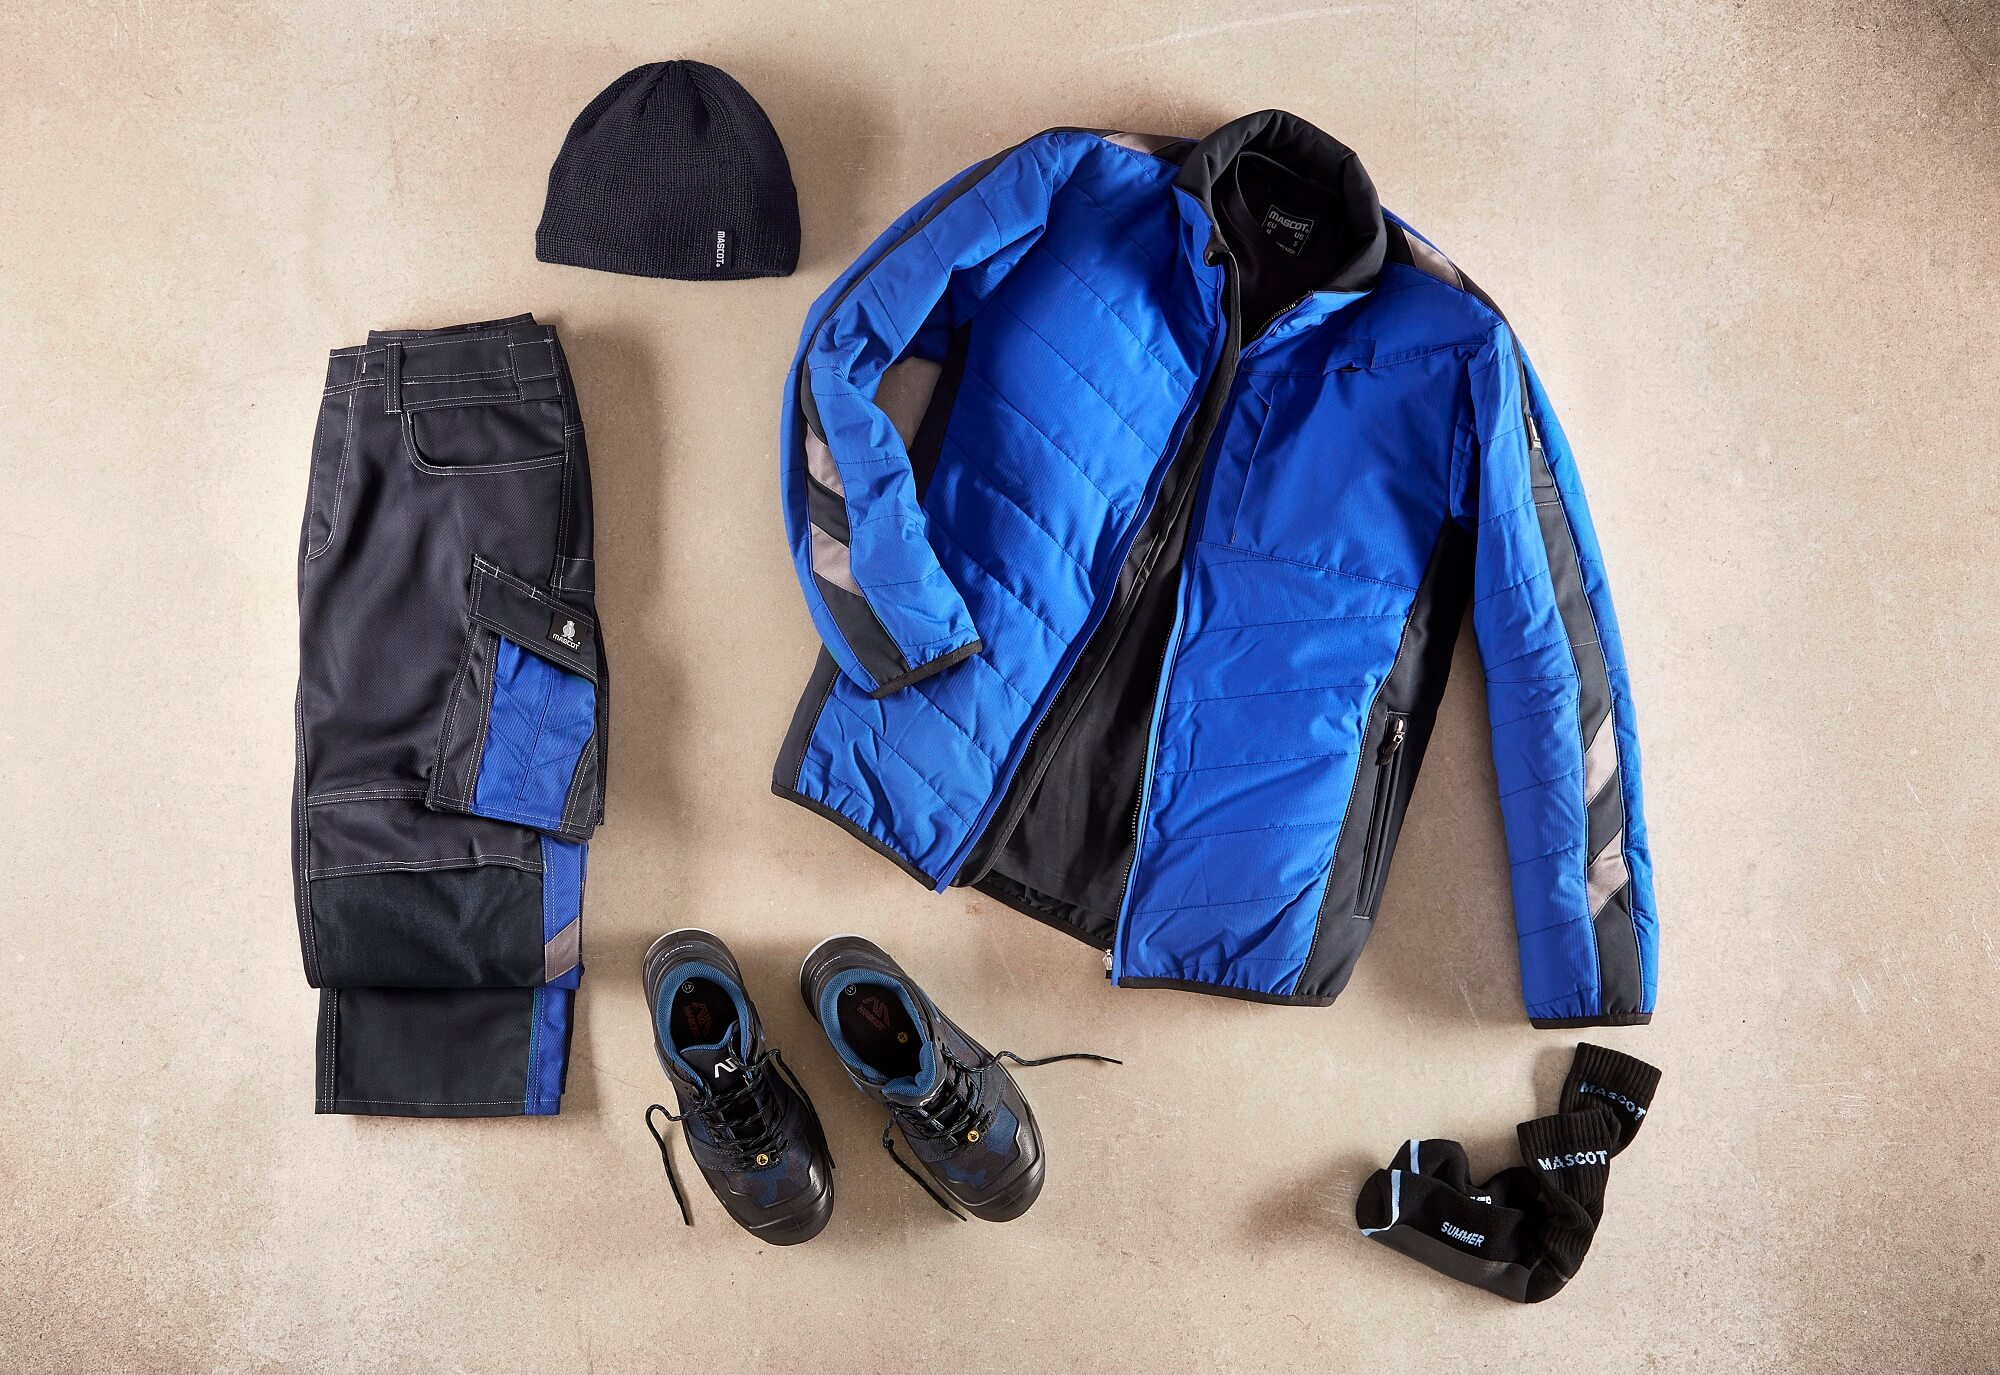 Royal blue - Thermal Jacket, Work Trousers, Safety footwear & Knitted Hat - Collage